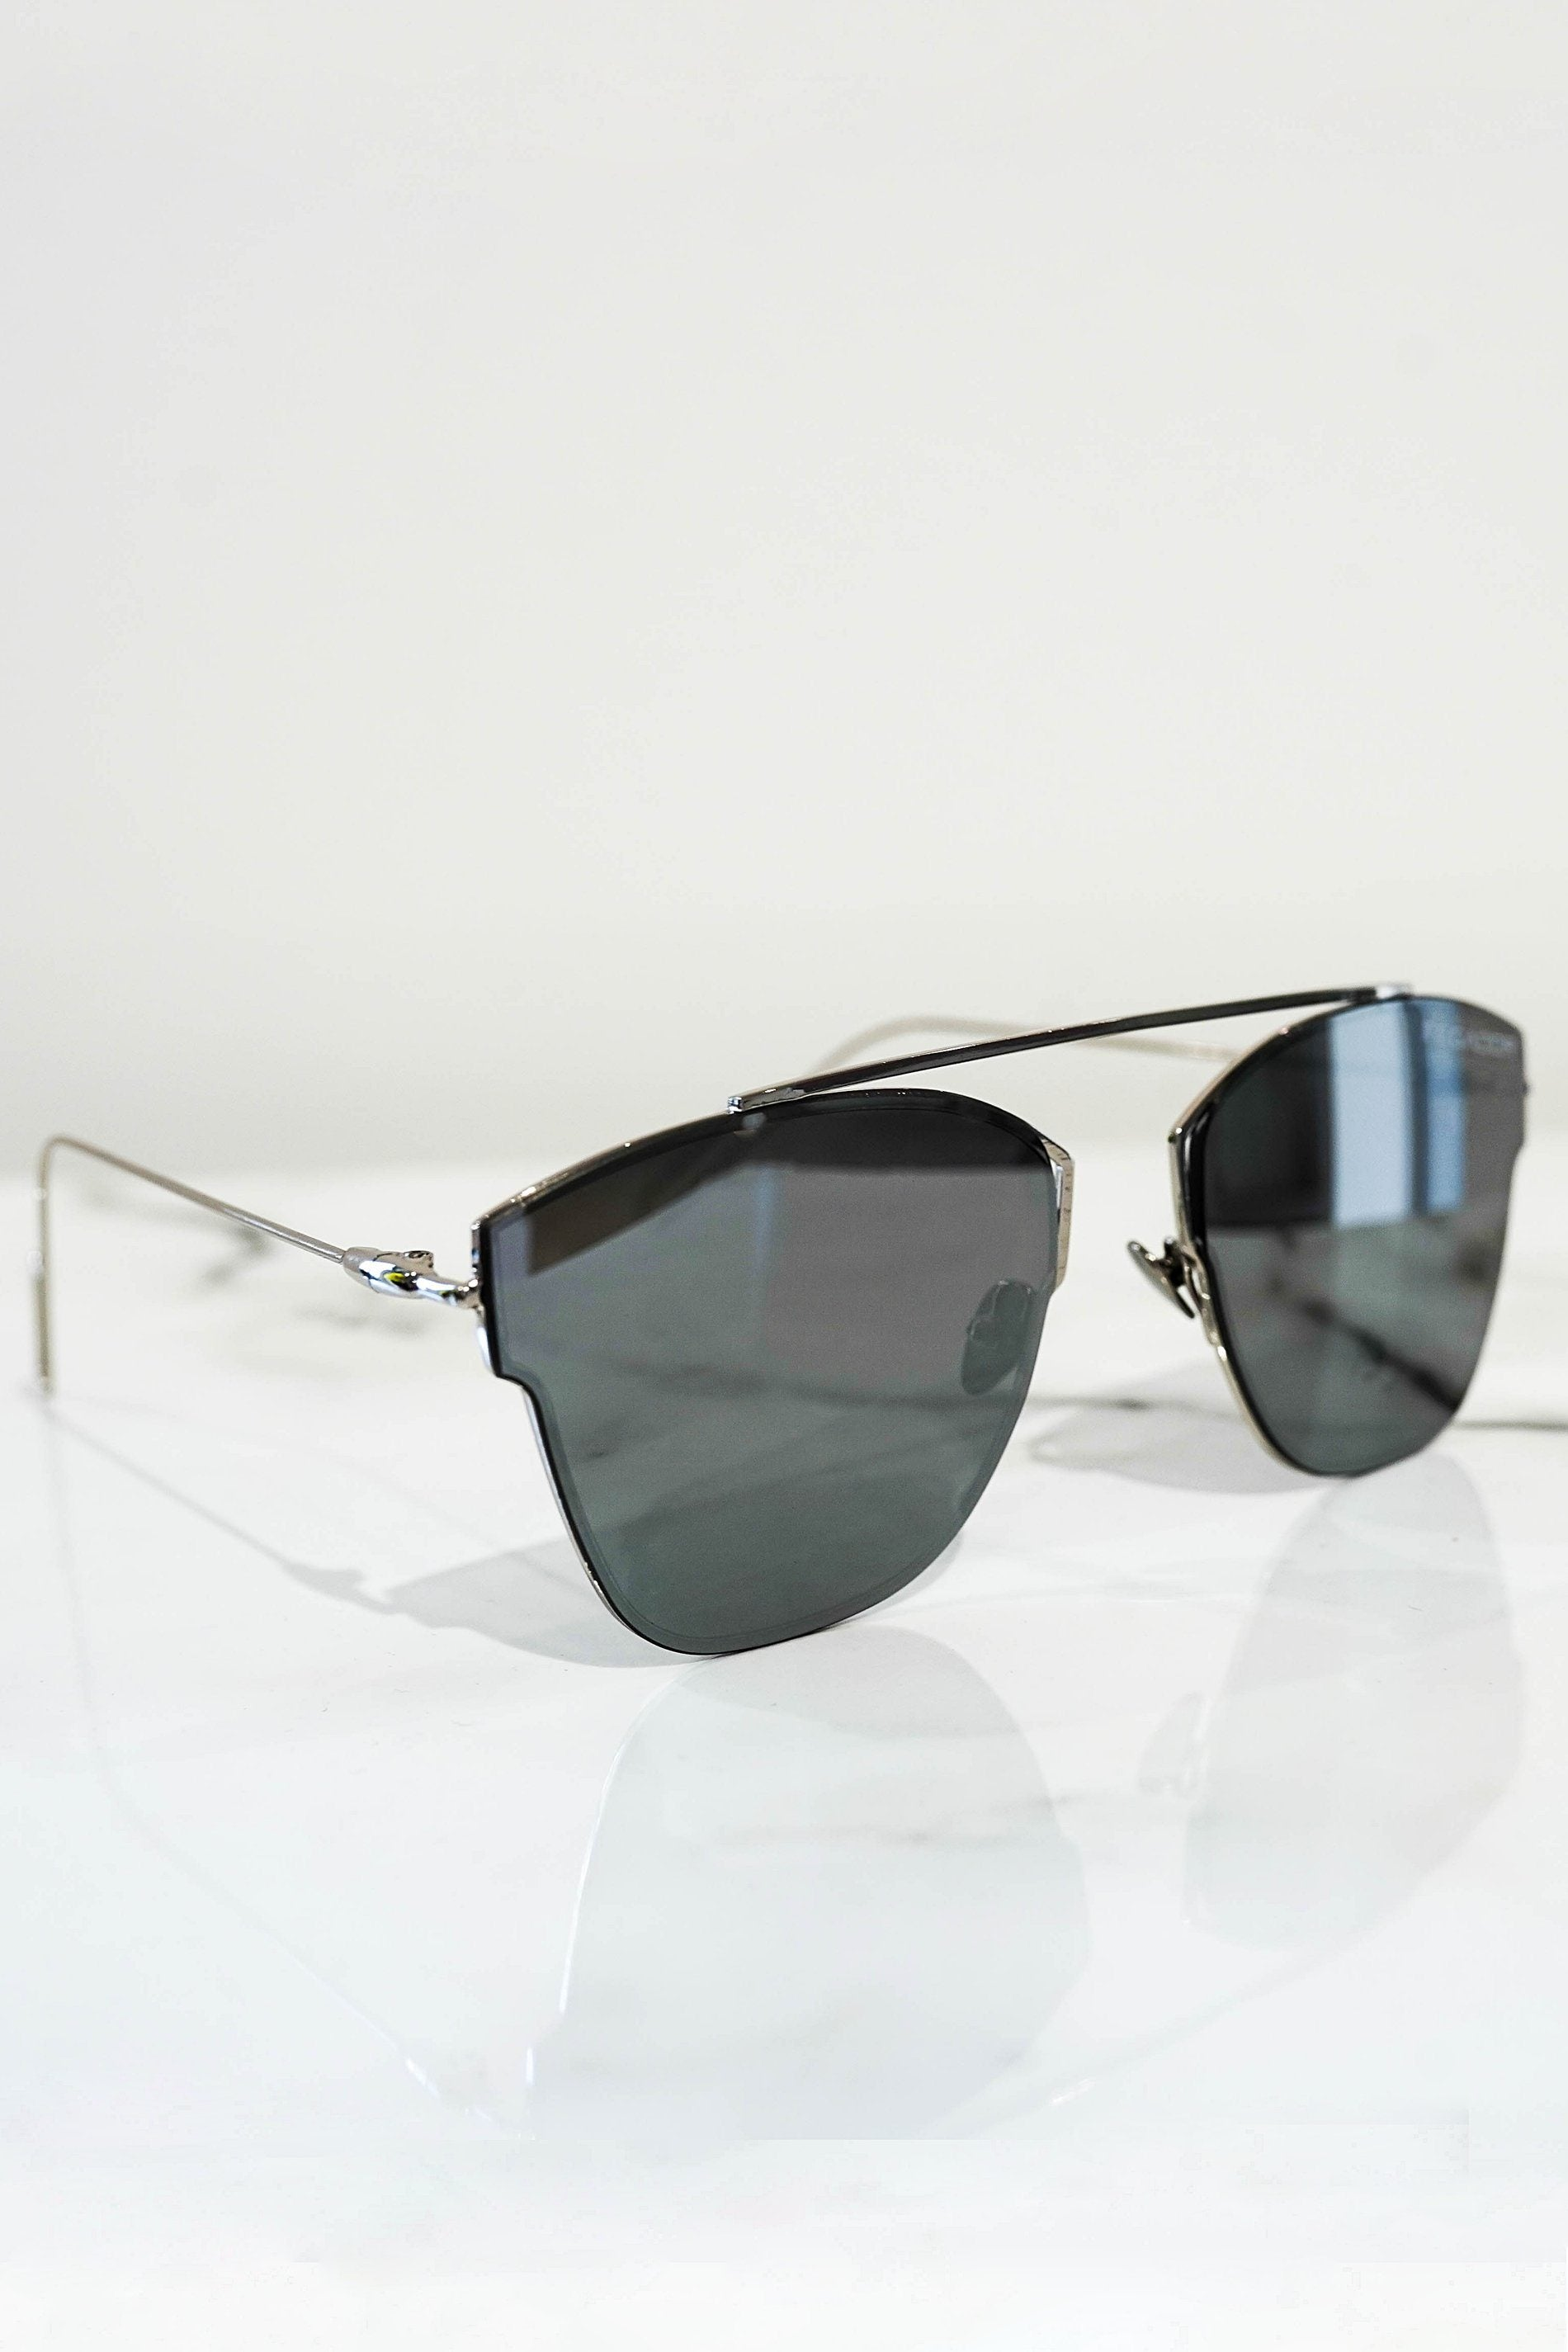 Logo sunglasses silver With mirrored lens